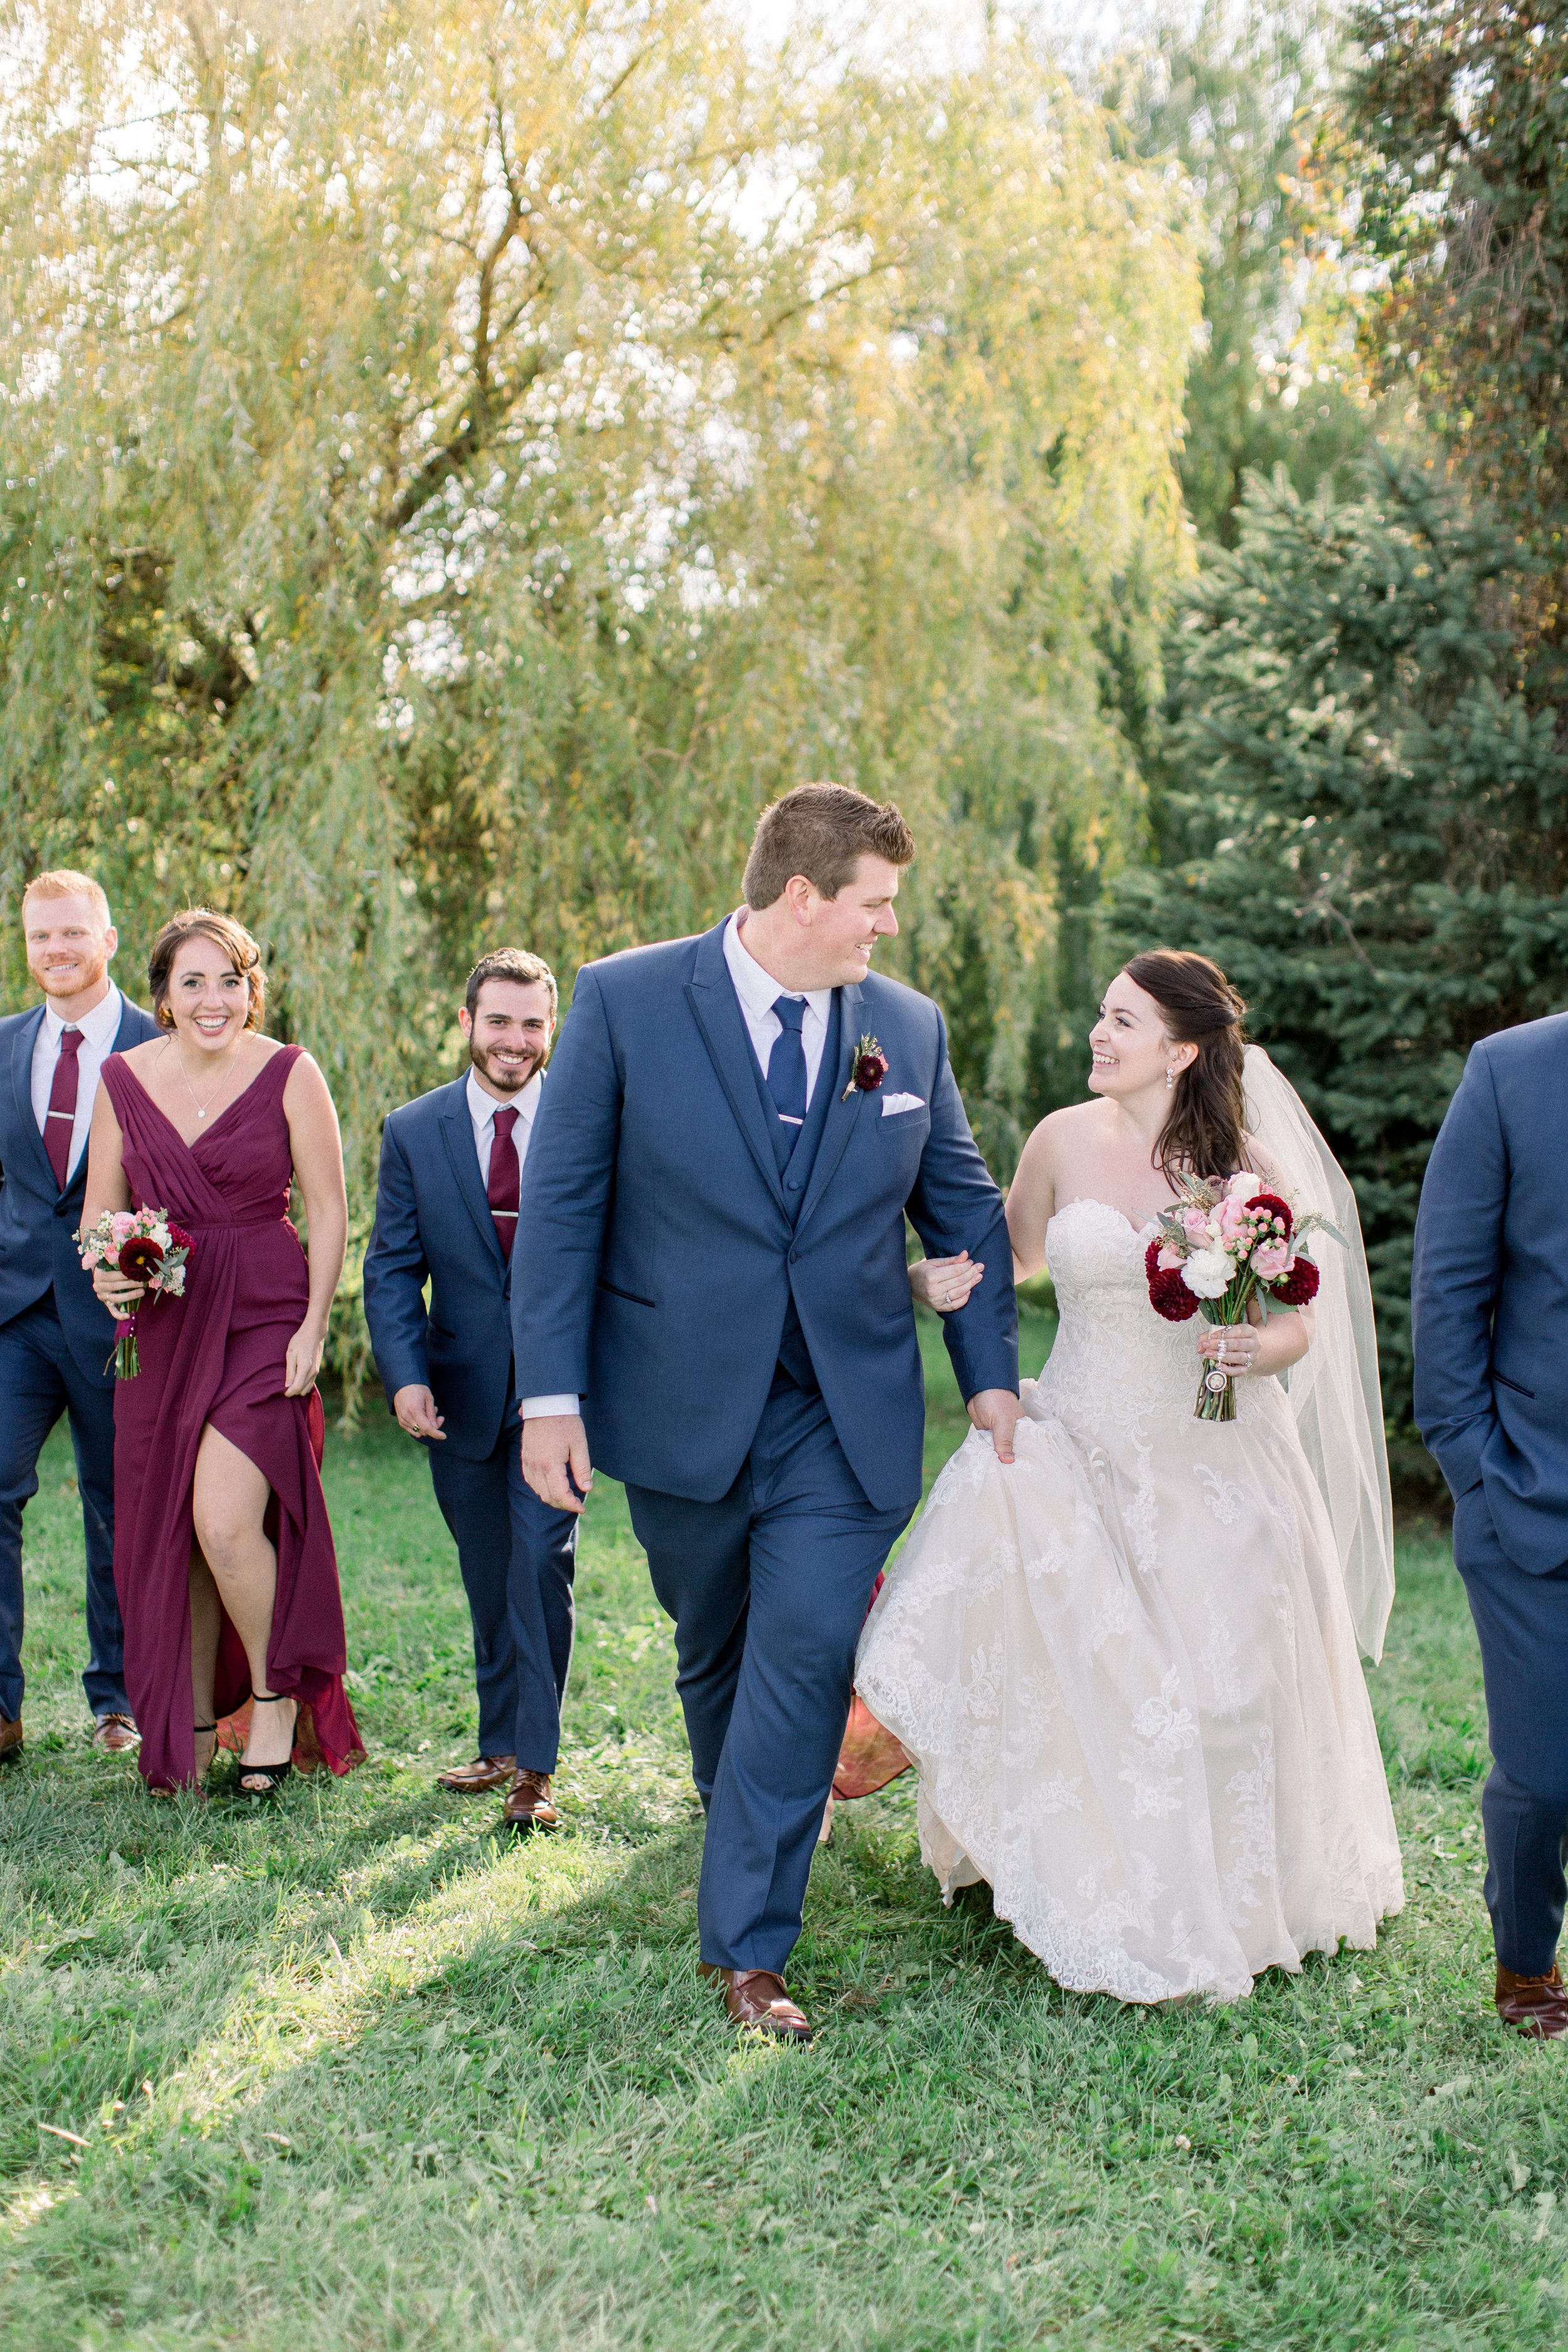 Bridal party photos outside in the Fall.